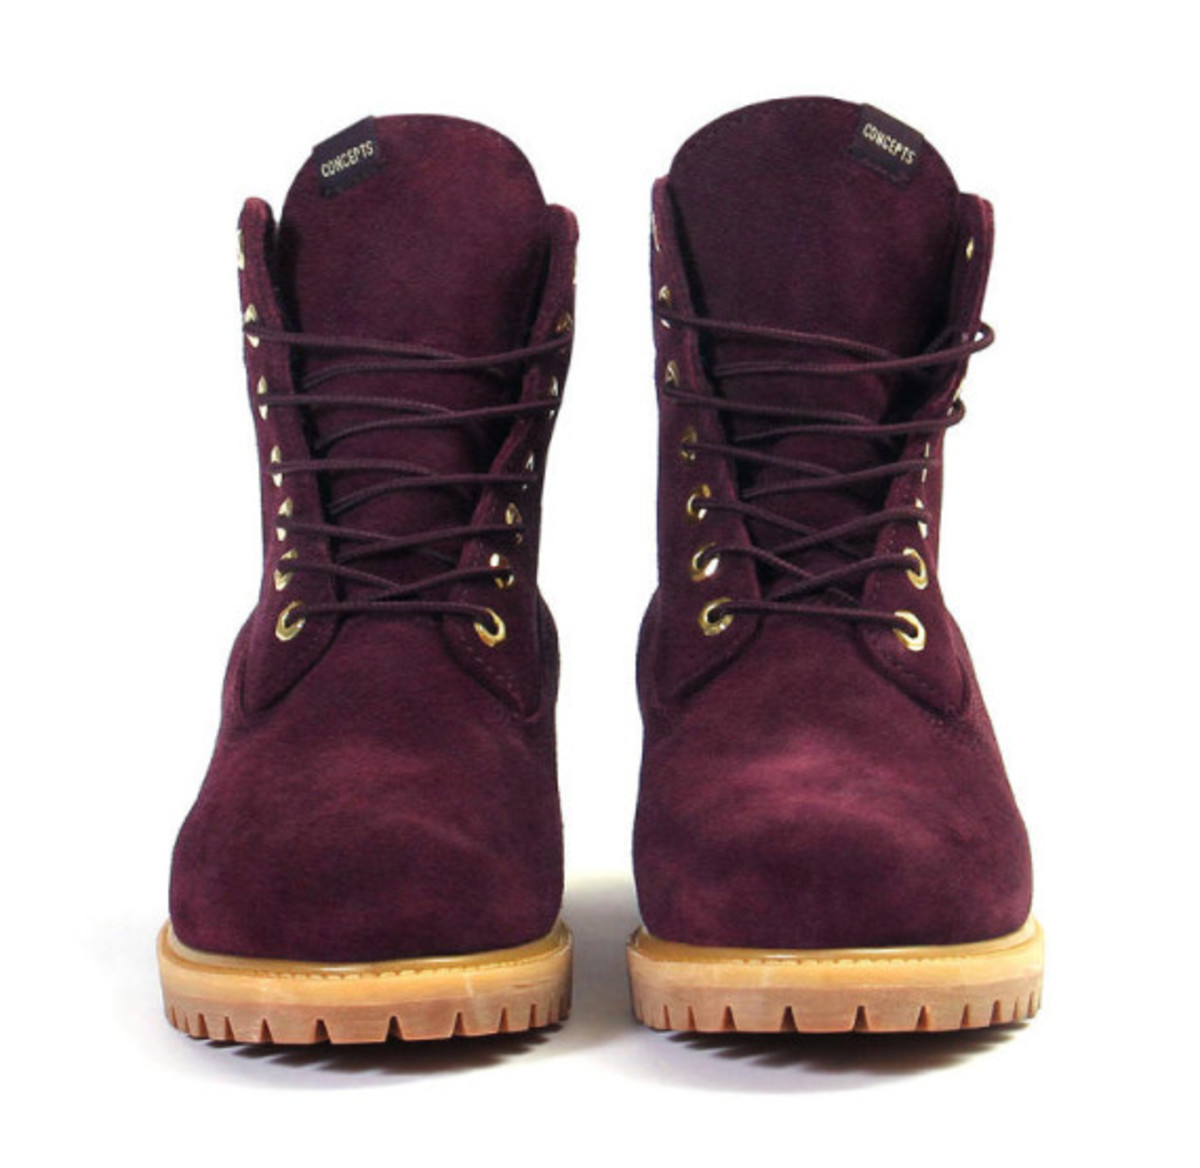 concepts-timberland-6-inch-boot-03